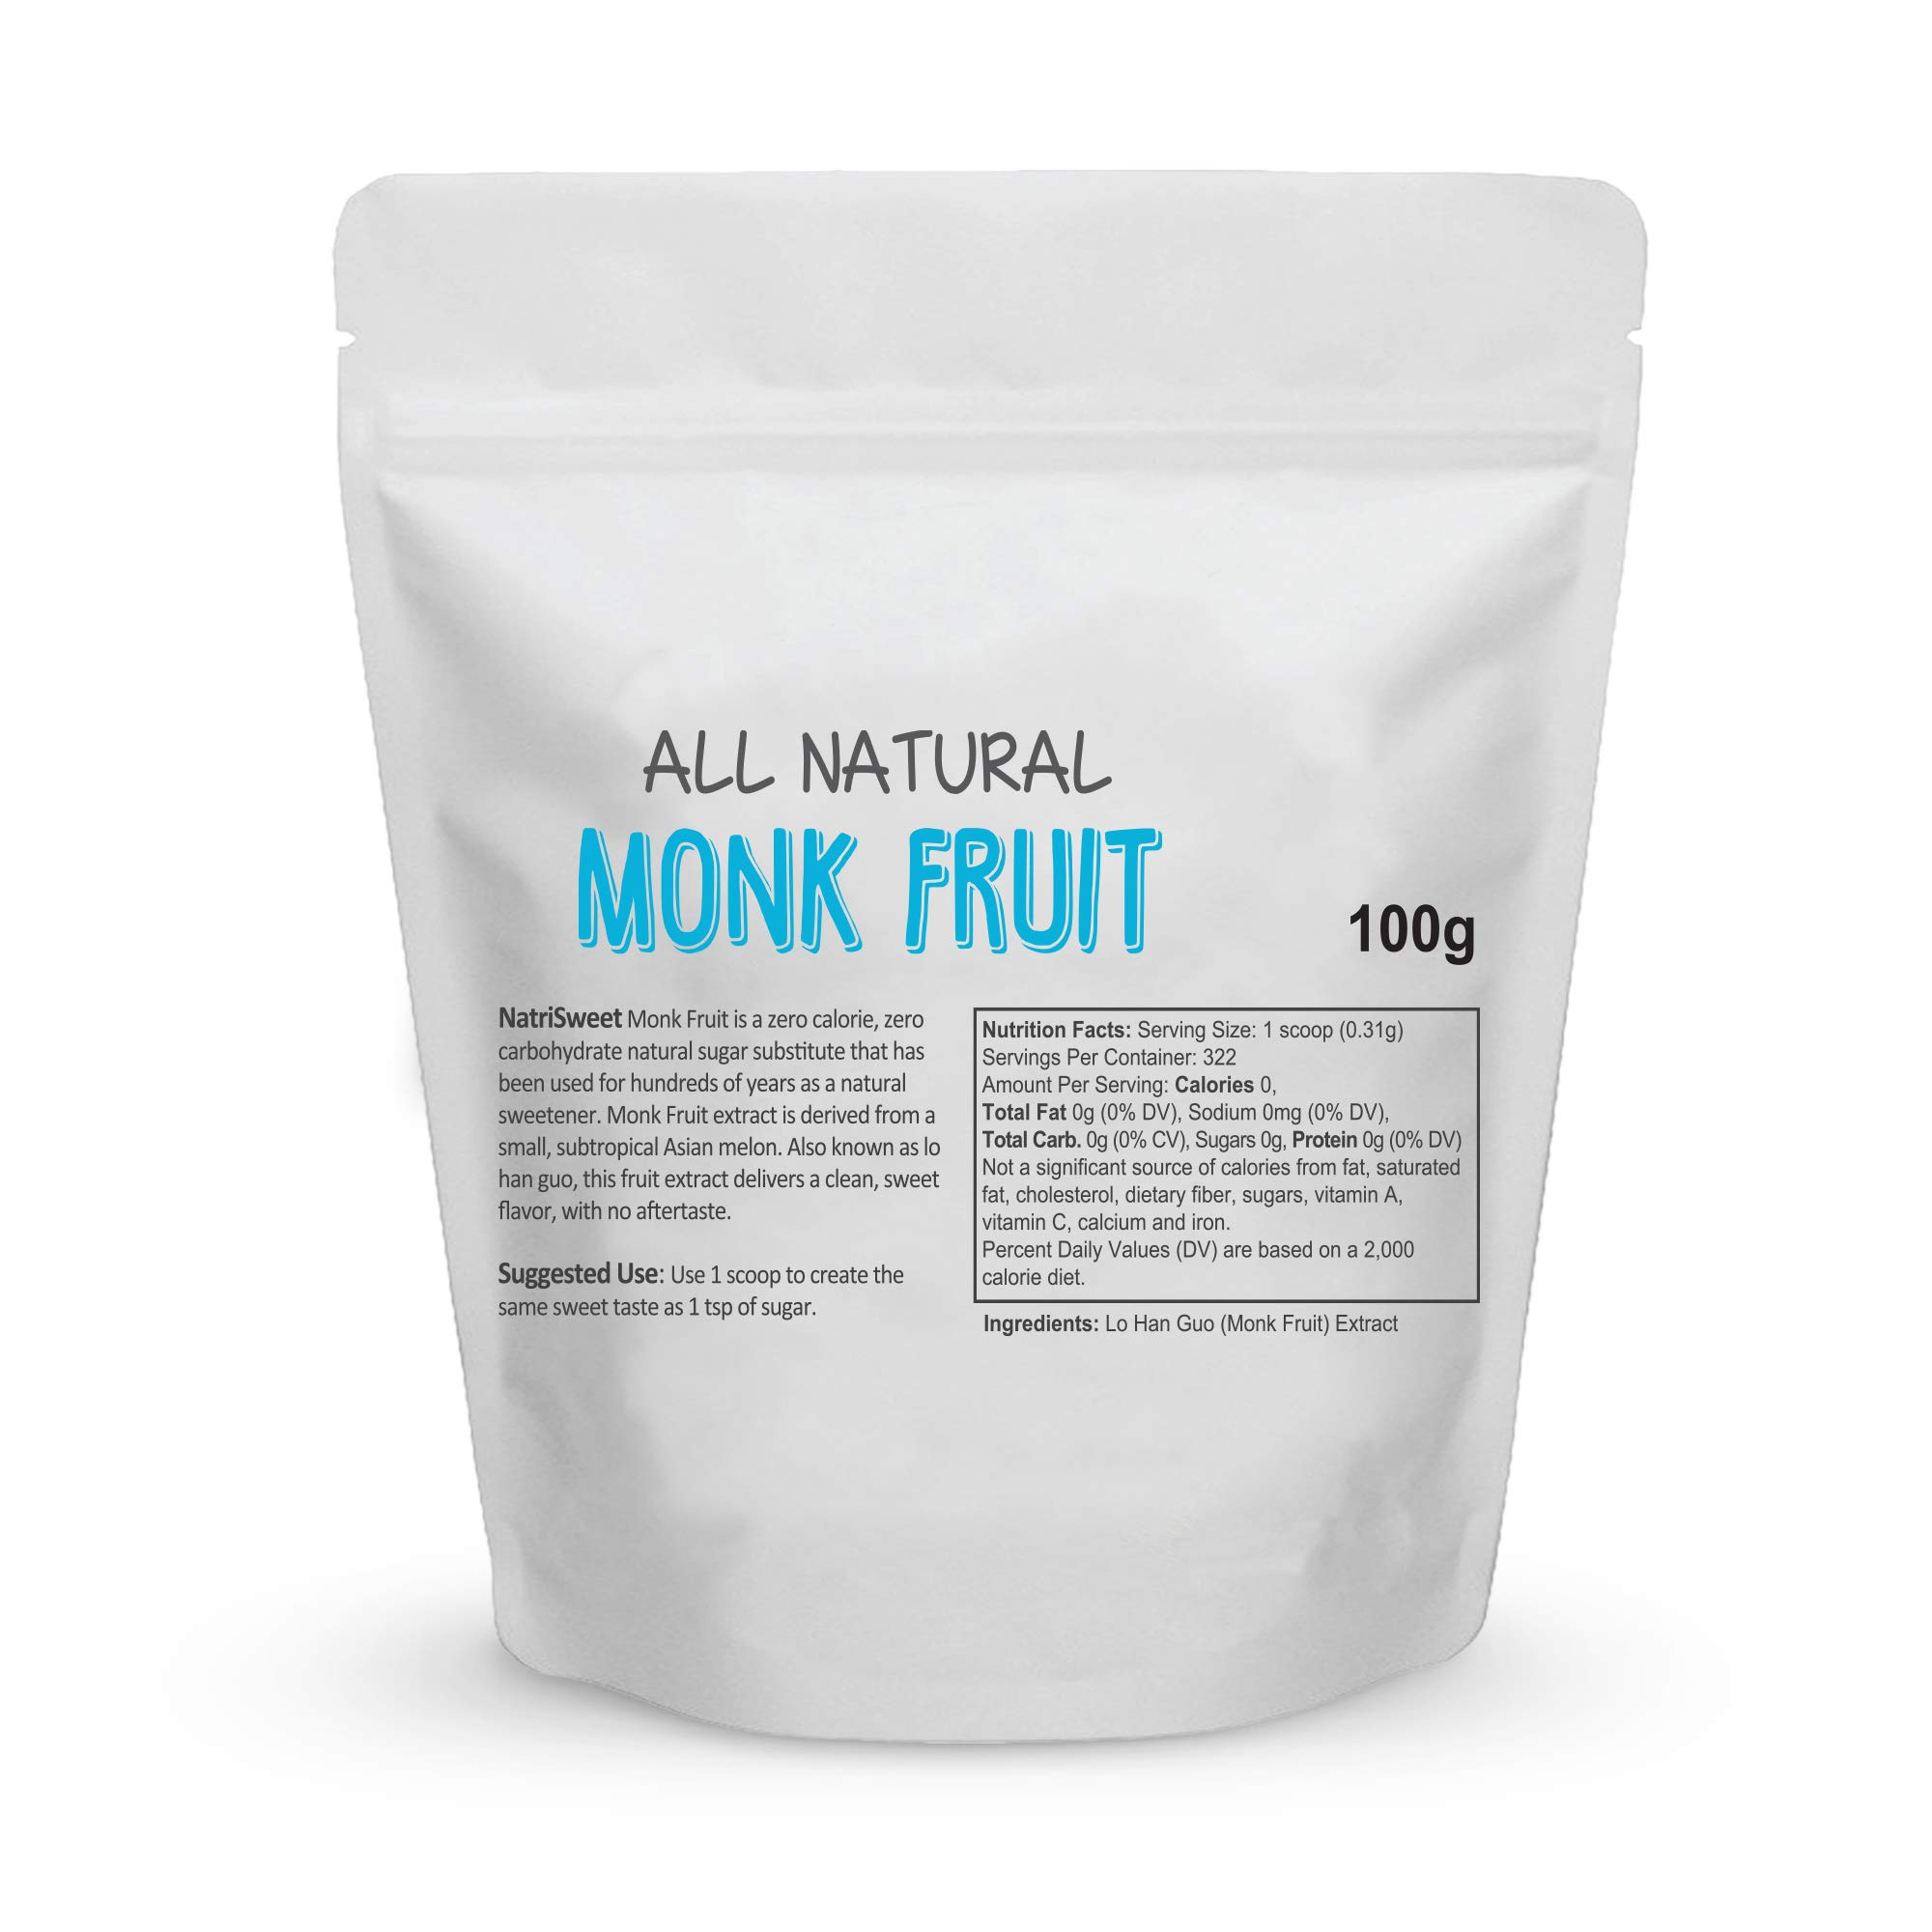 NatriSweet Monk Fruit Extract 3.5oz (100g) 322 Servings | Zero Calorie, Zero Carb, Natural Sweetener | Sugar Alternative with No Artificial Sweeteners | Perfect for Keto, Paleo & Low-Carb Dieters by NatriSweet (Image #2)